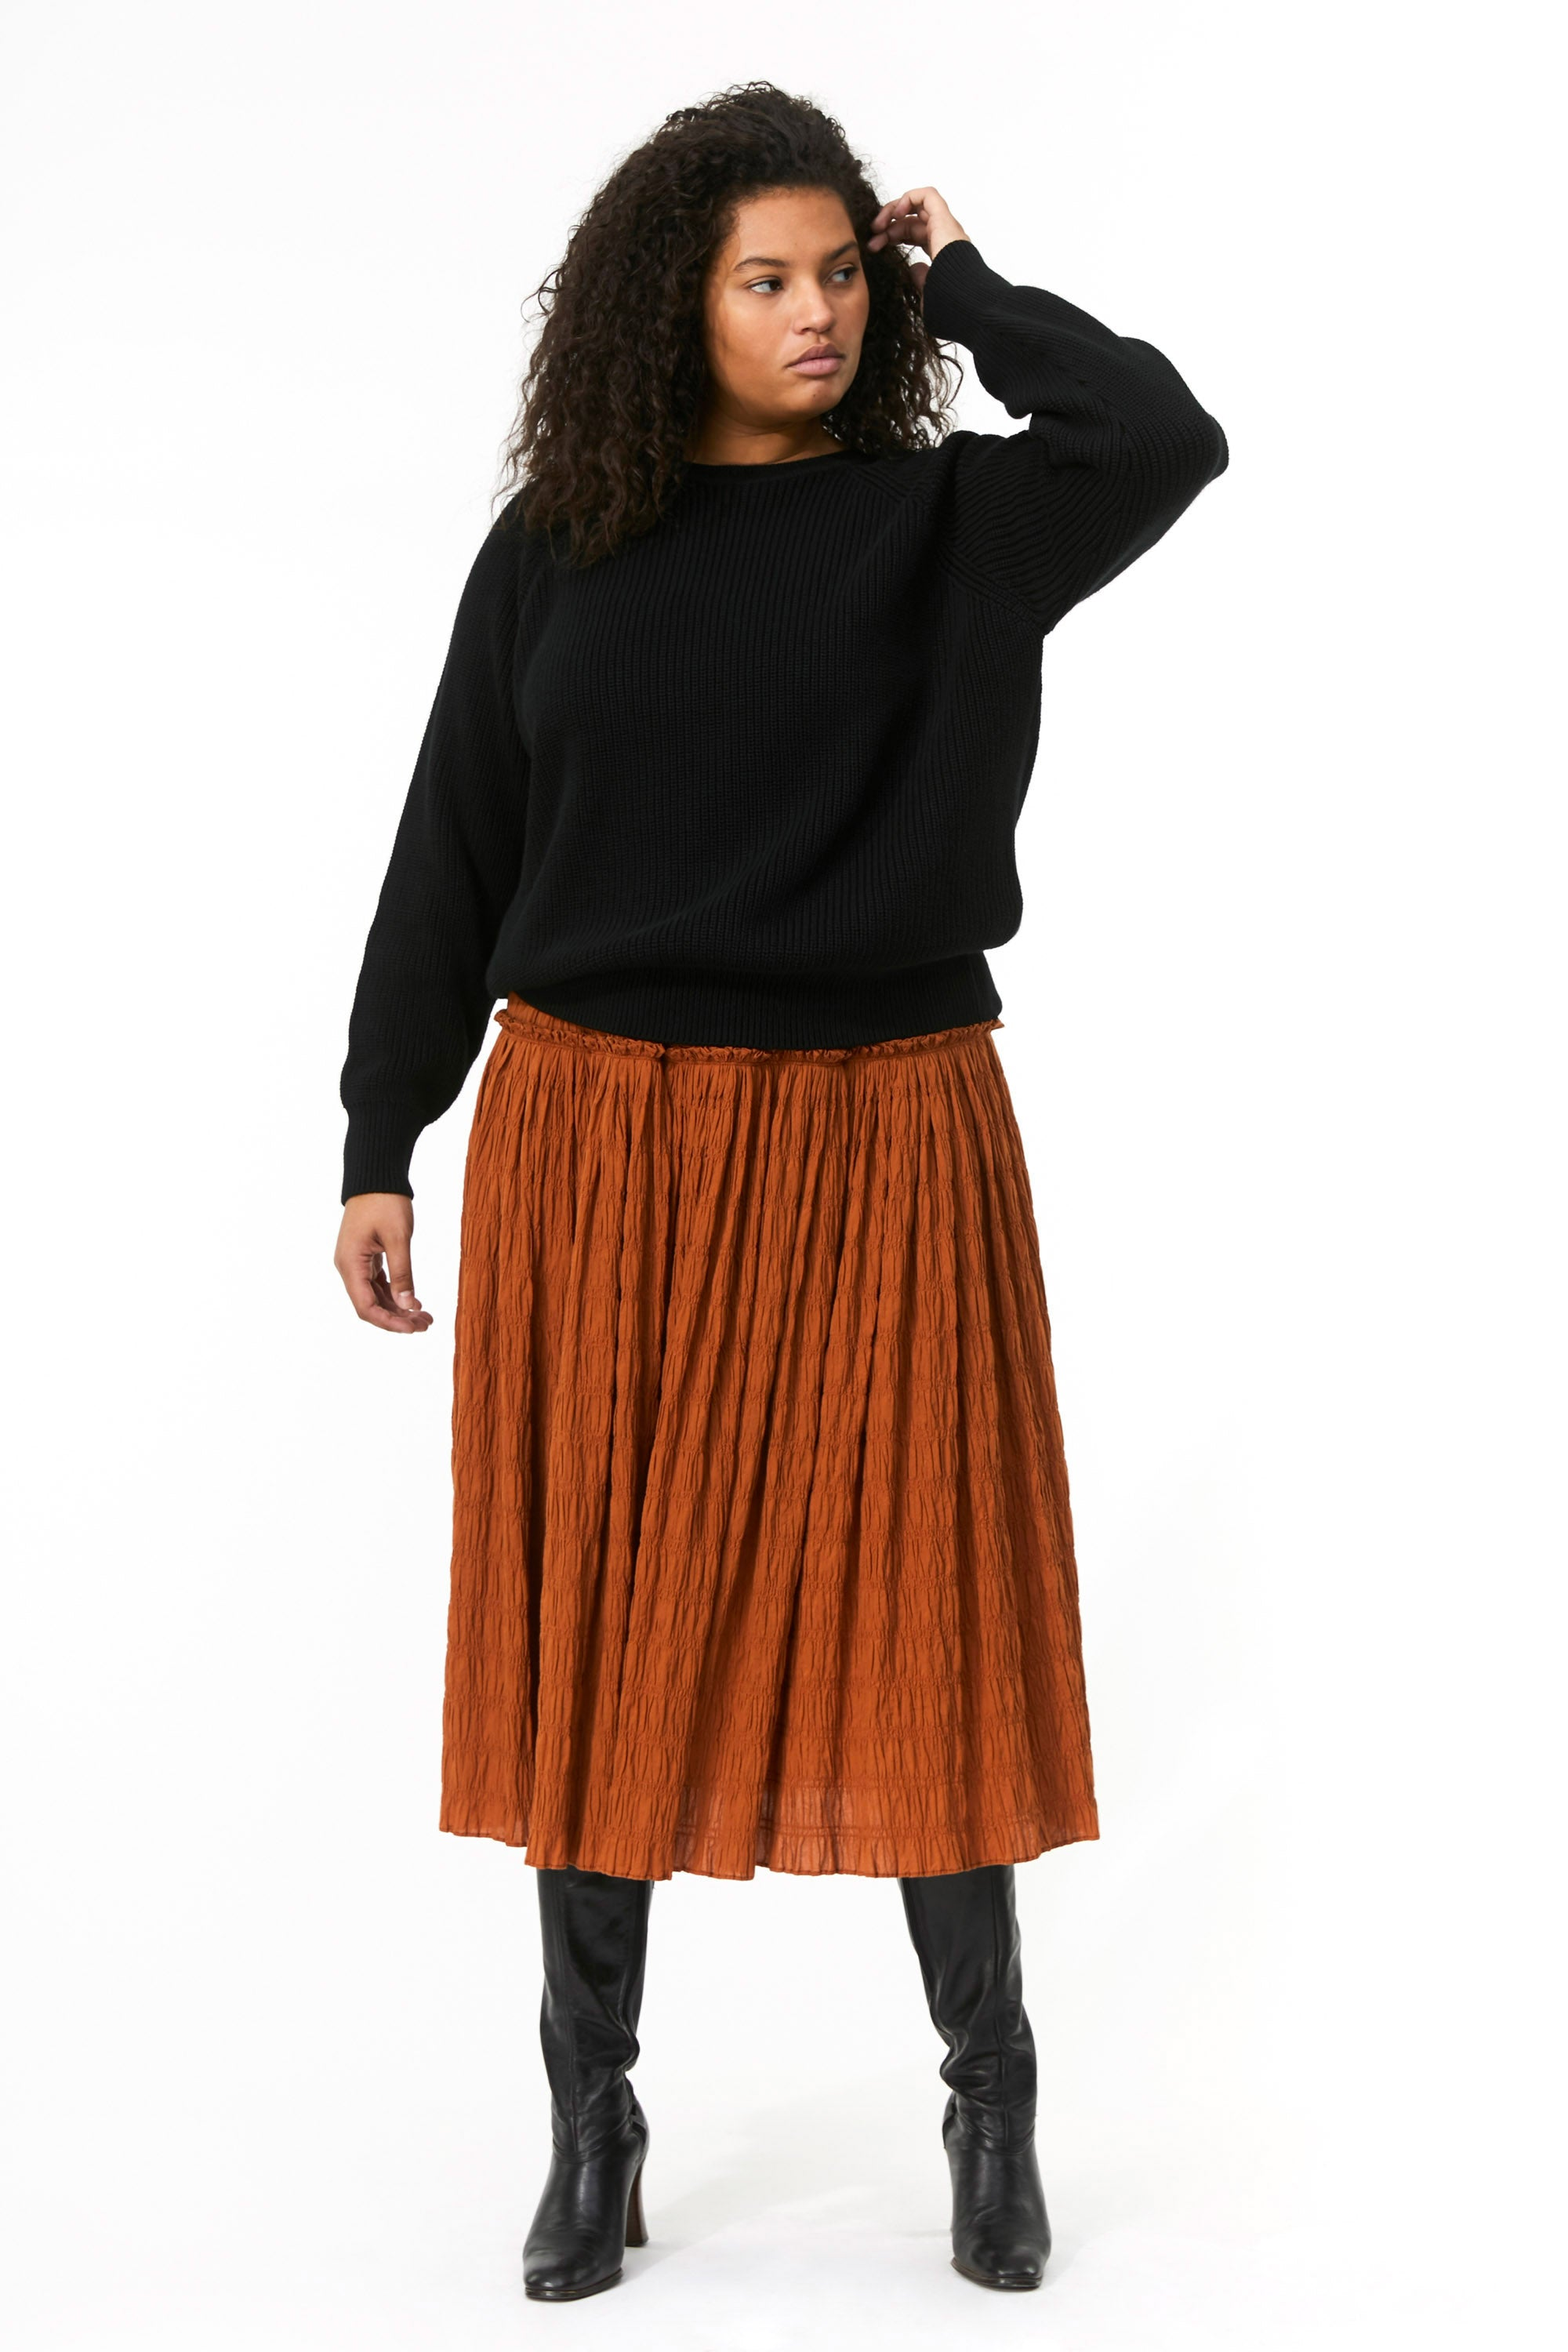 Mara Hoffman Extended Black Avery Sweater in organic cotton (front)